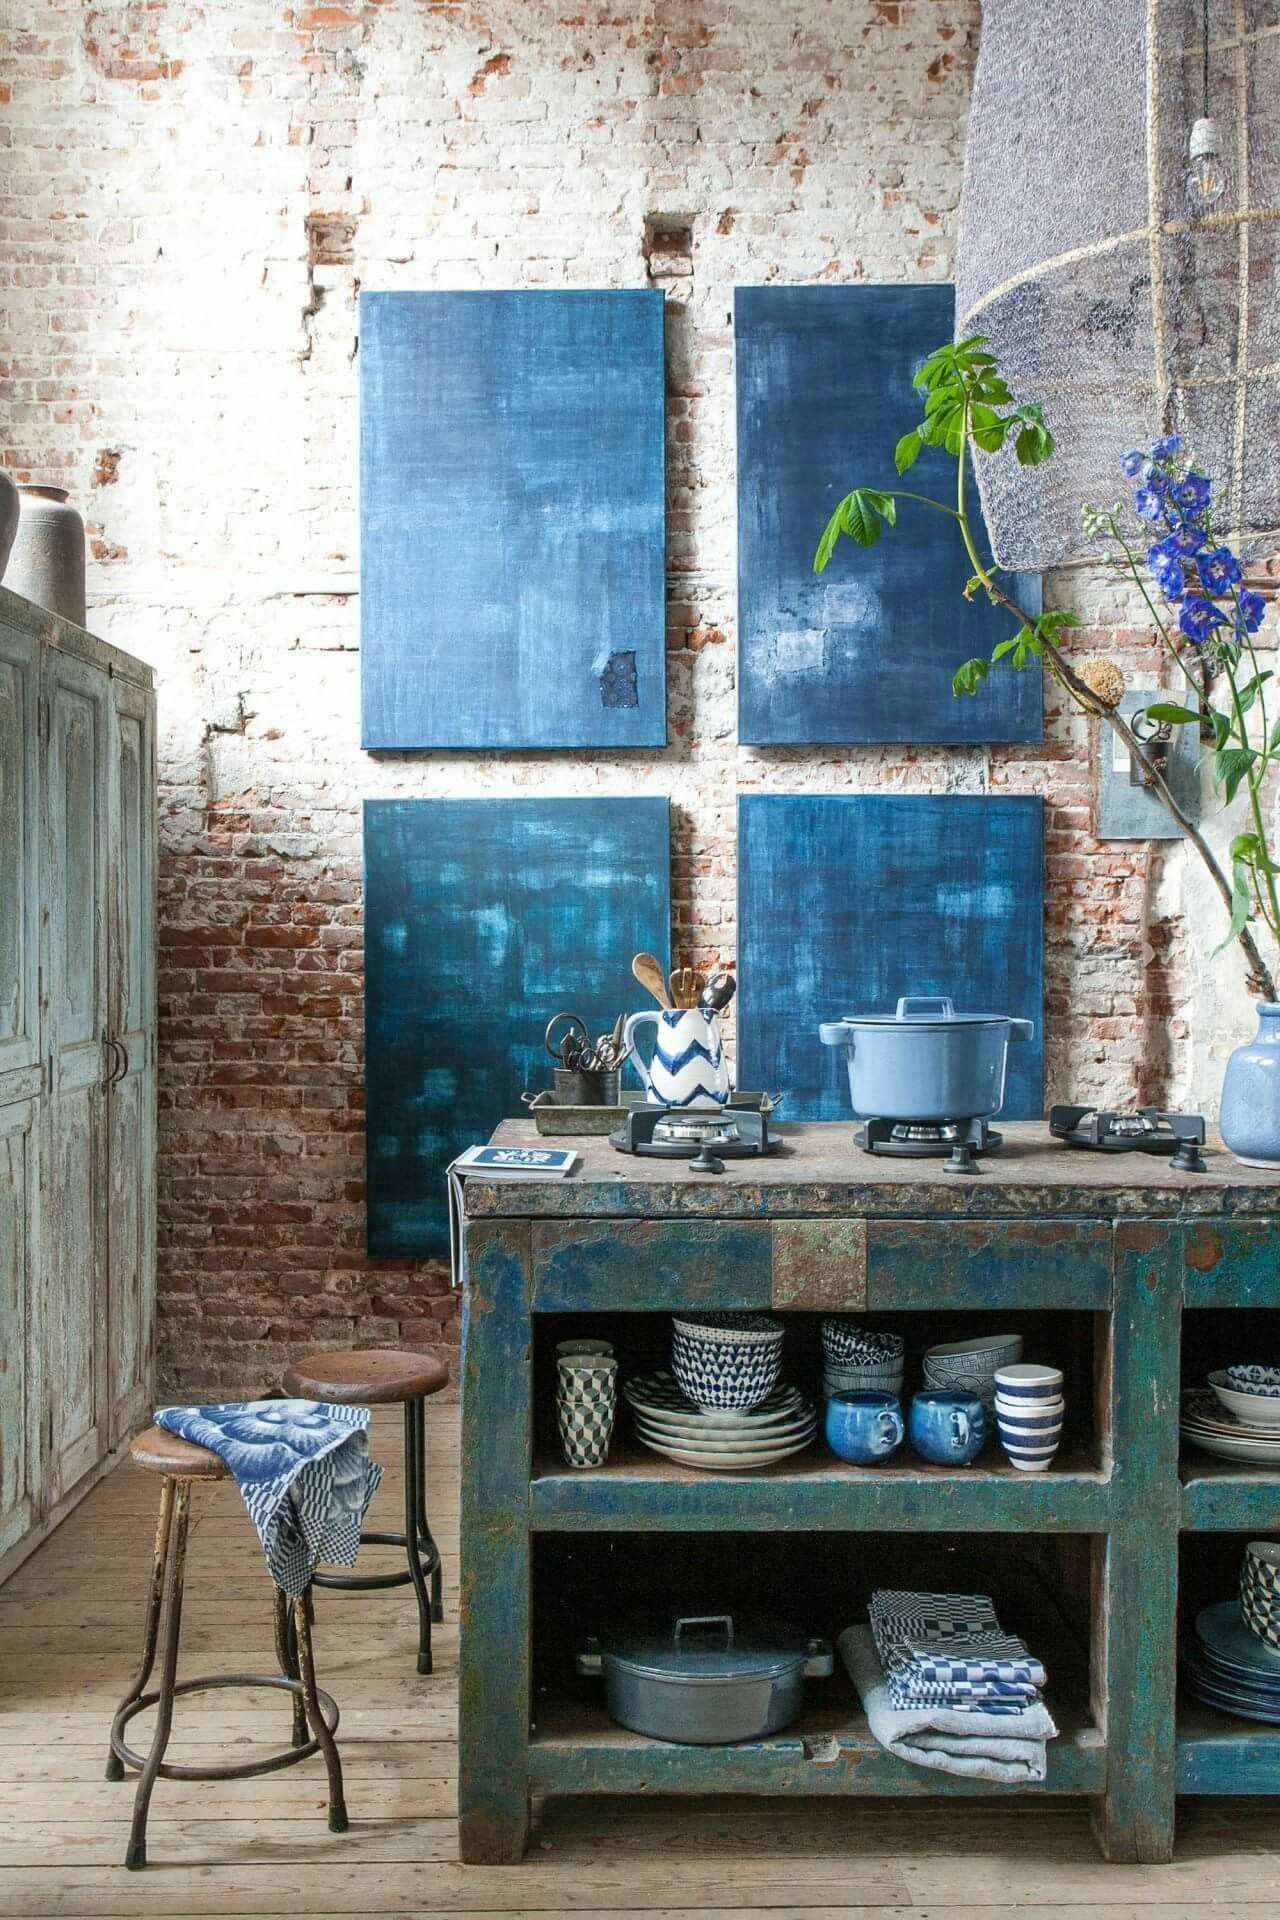 Kitchen With Brick Walls And Blue Motif